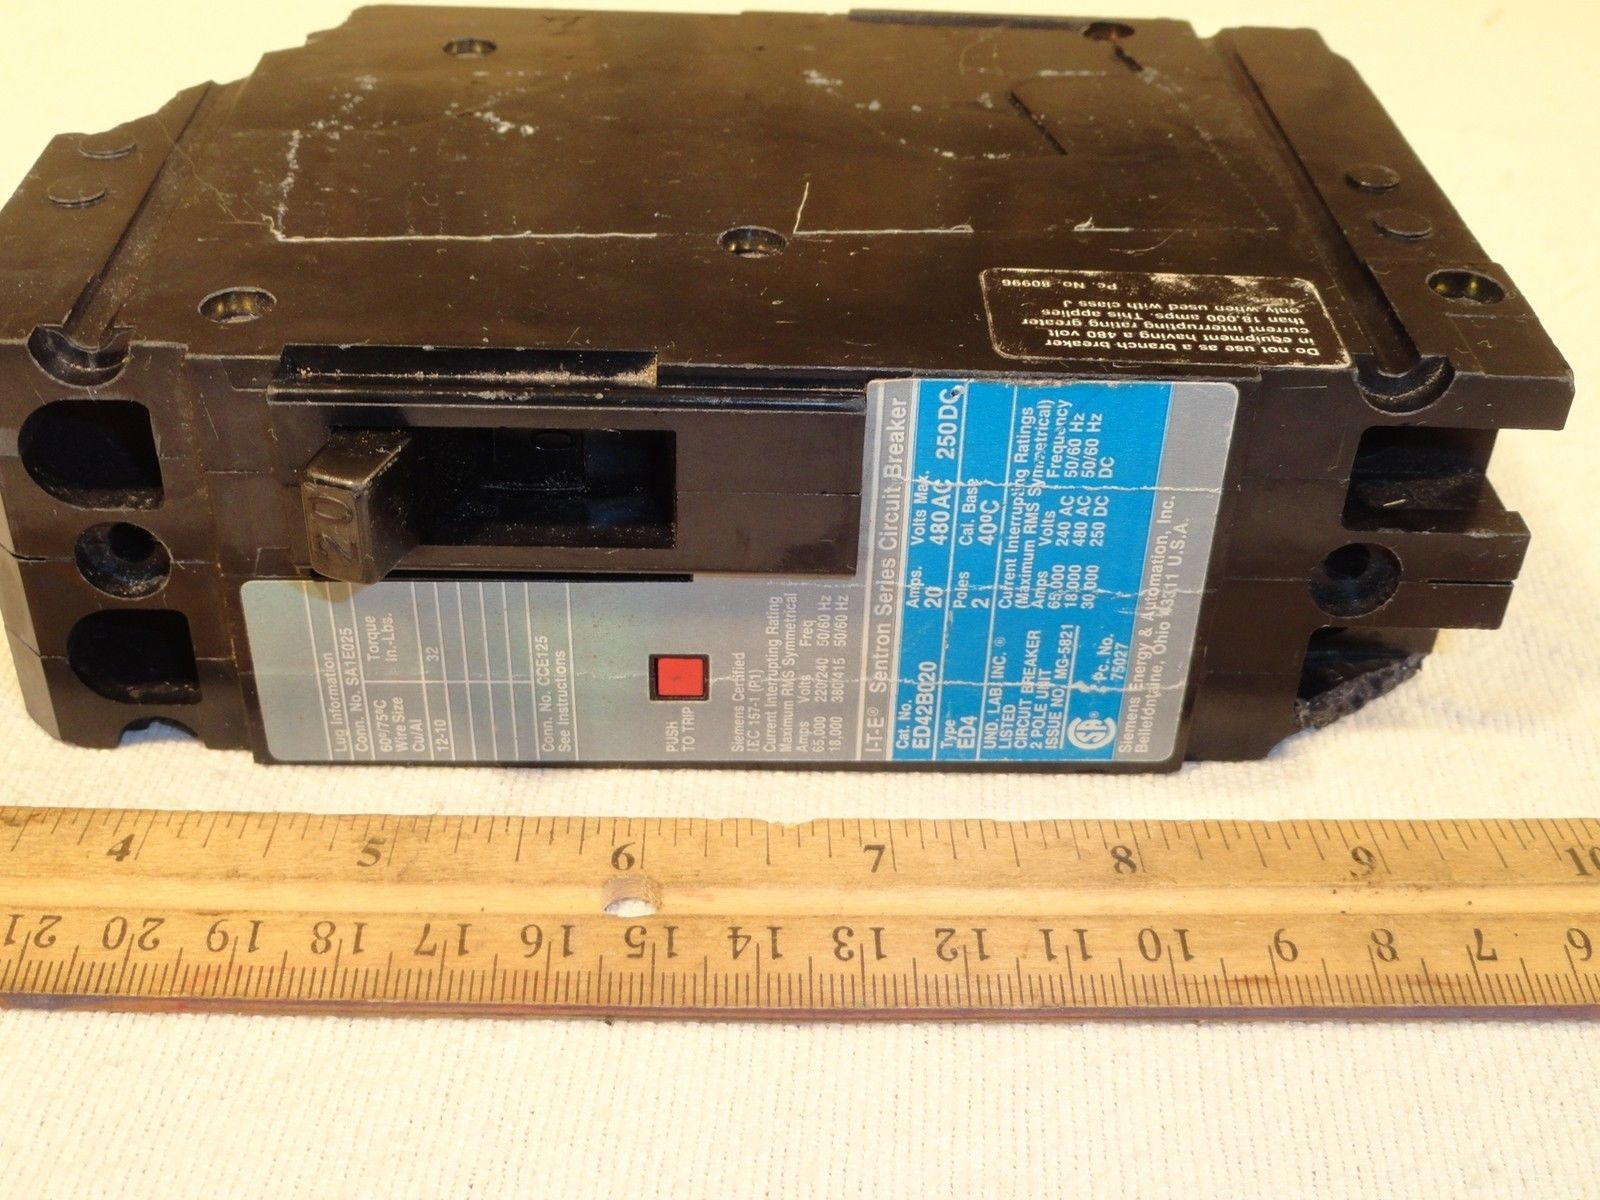 Details About Siemens 5sx21 C5 230 400v 5 Amp Circuit Breaker Ite Sentron Ed42 B020 And 50 Similar Items Ed42b020 2 Pole 480vac 250vdc 20a